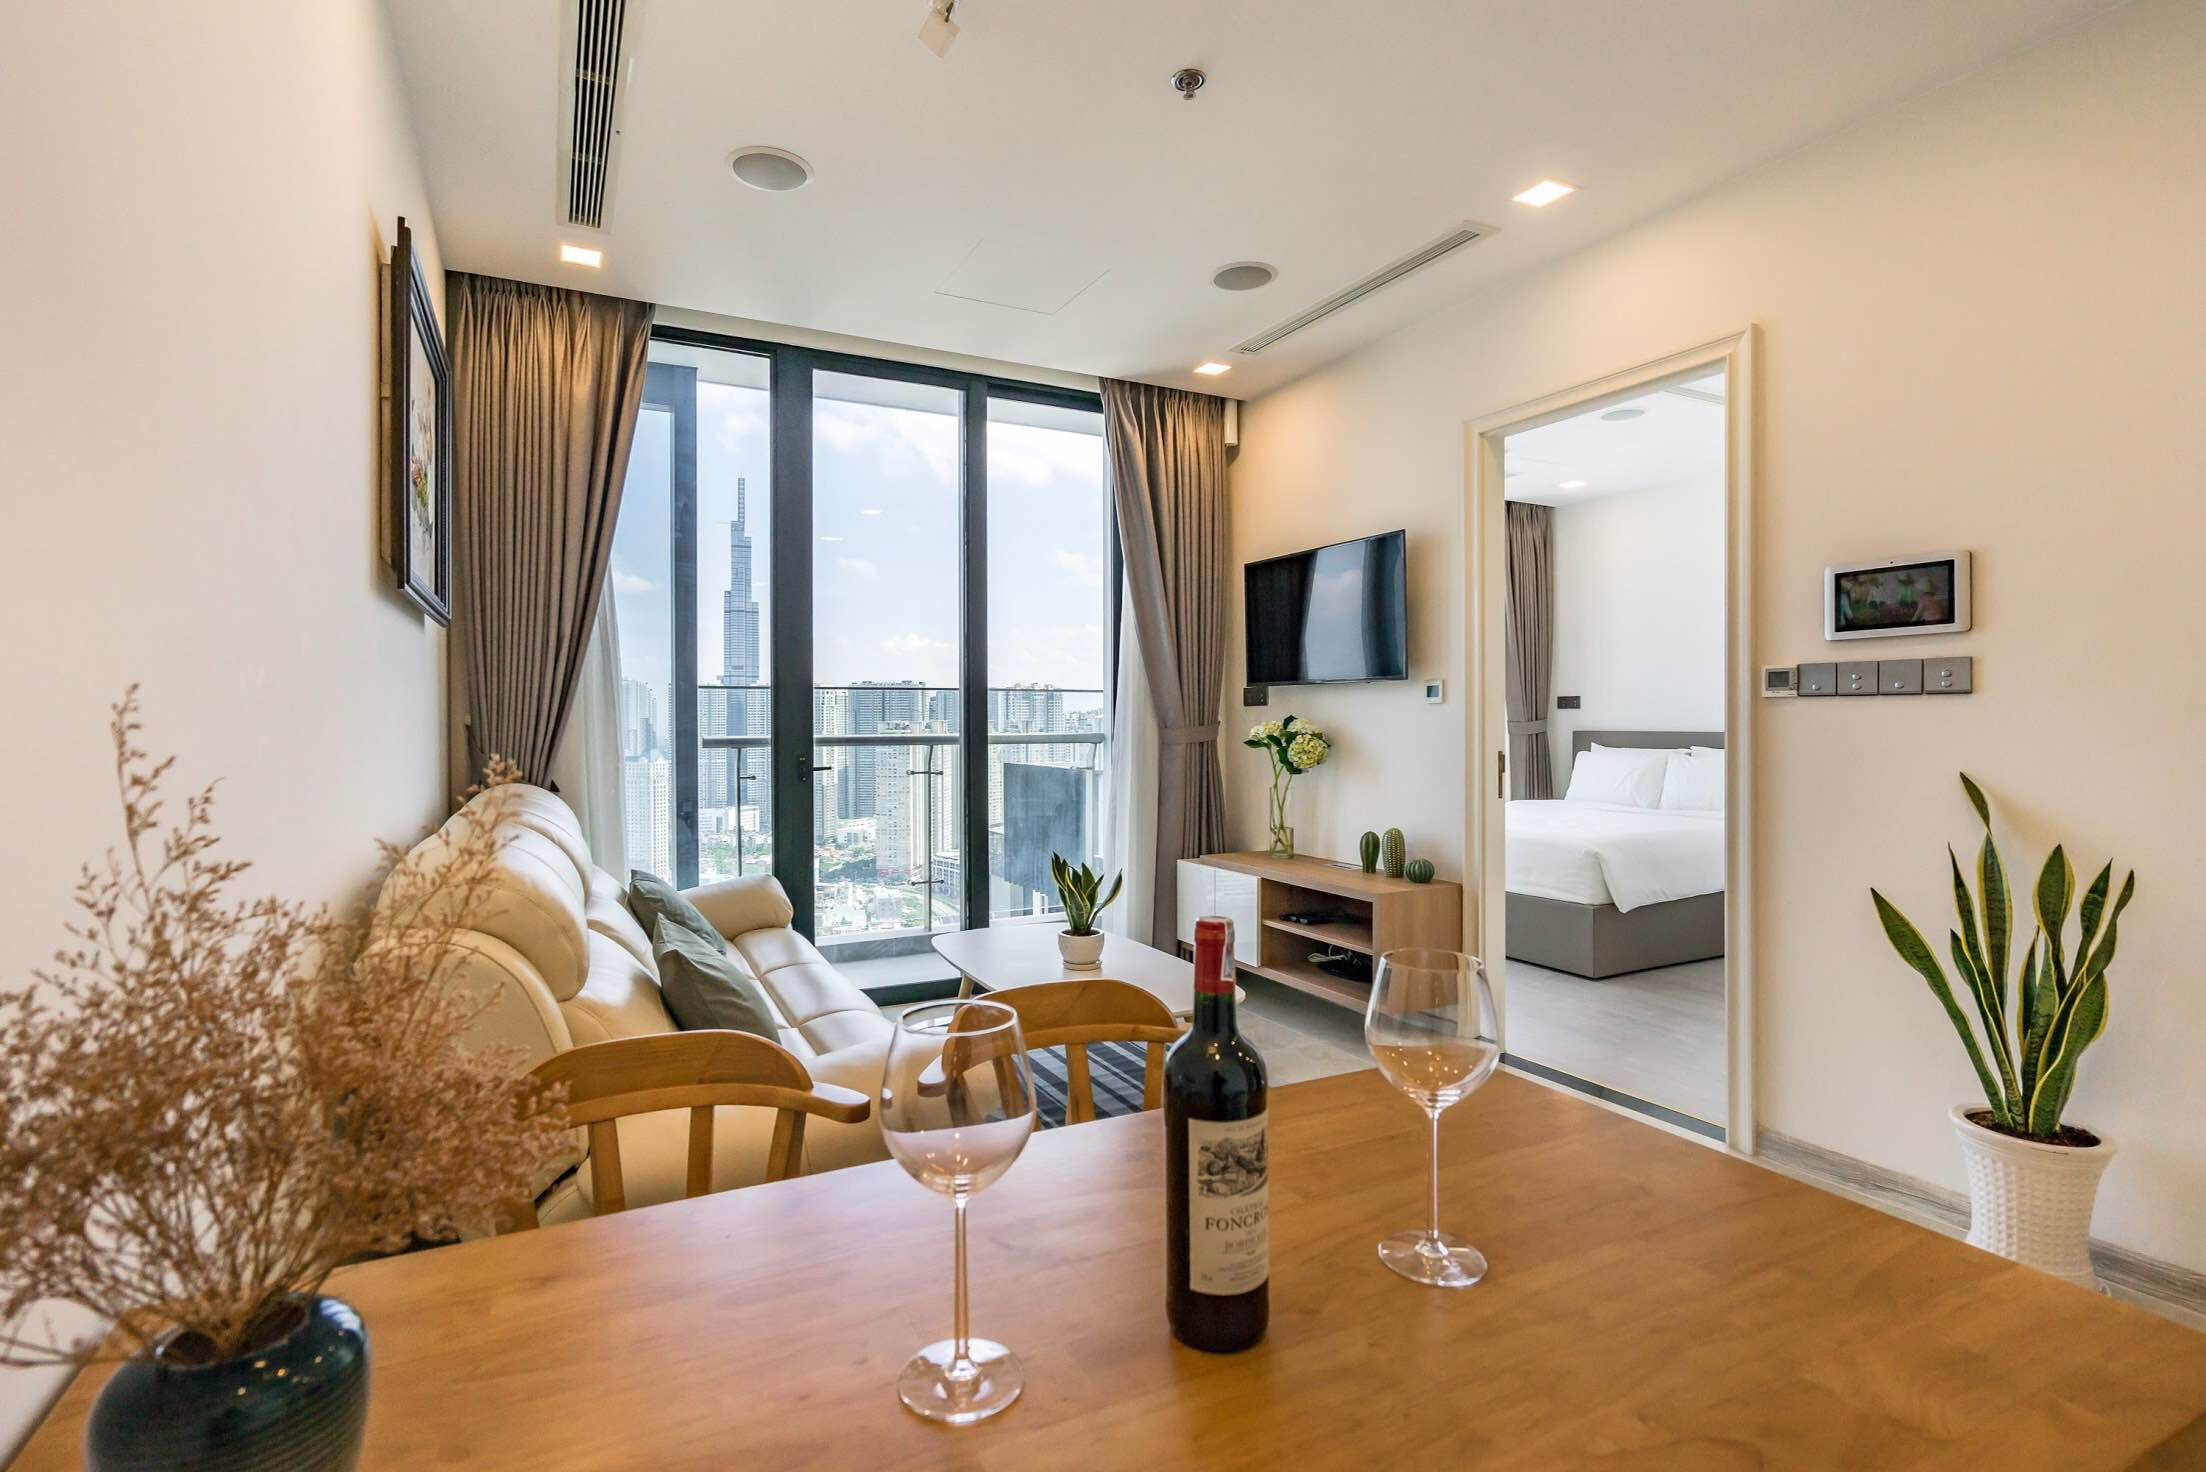 VGR98089 - Vinhomes Golden River Apartment For Rent & Sale Ho Chi Minh